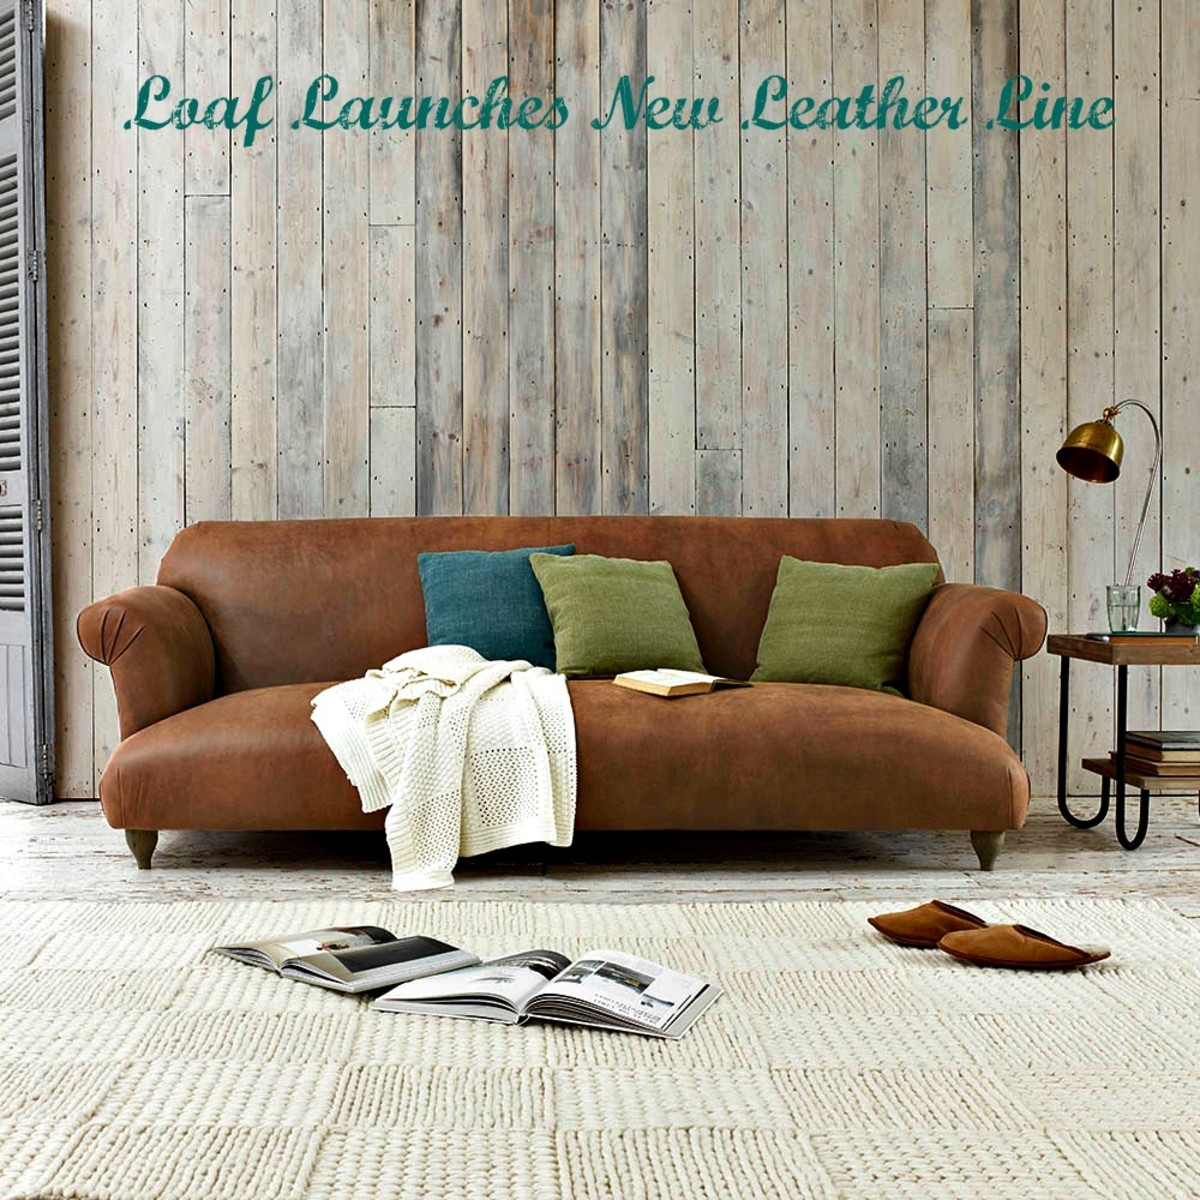 Loaf - Souffle leather sofa from £1795 low-res1.jpg